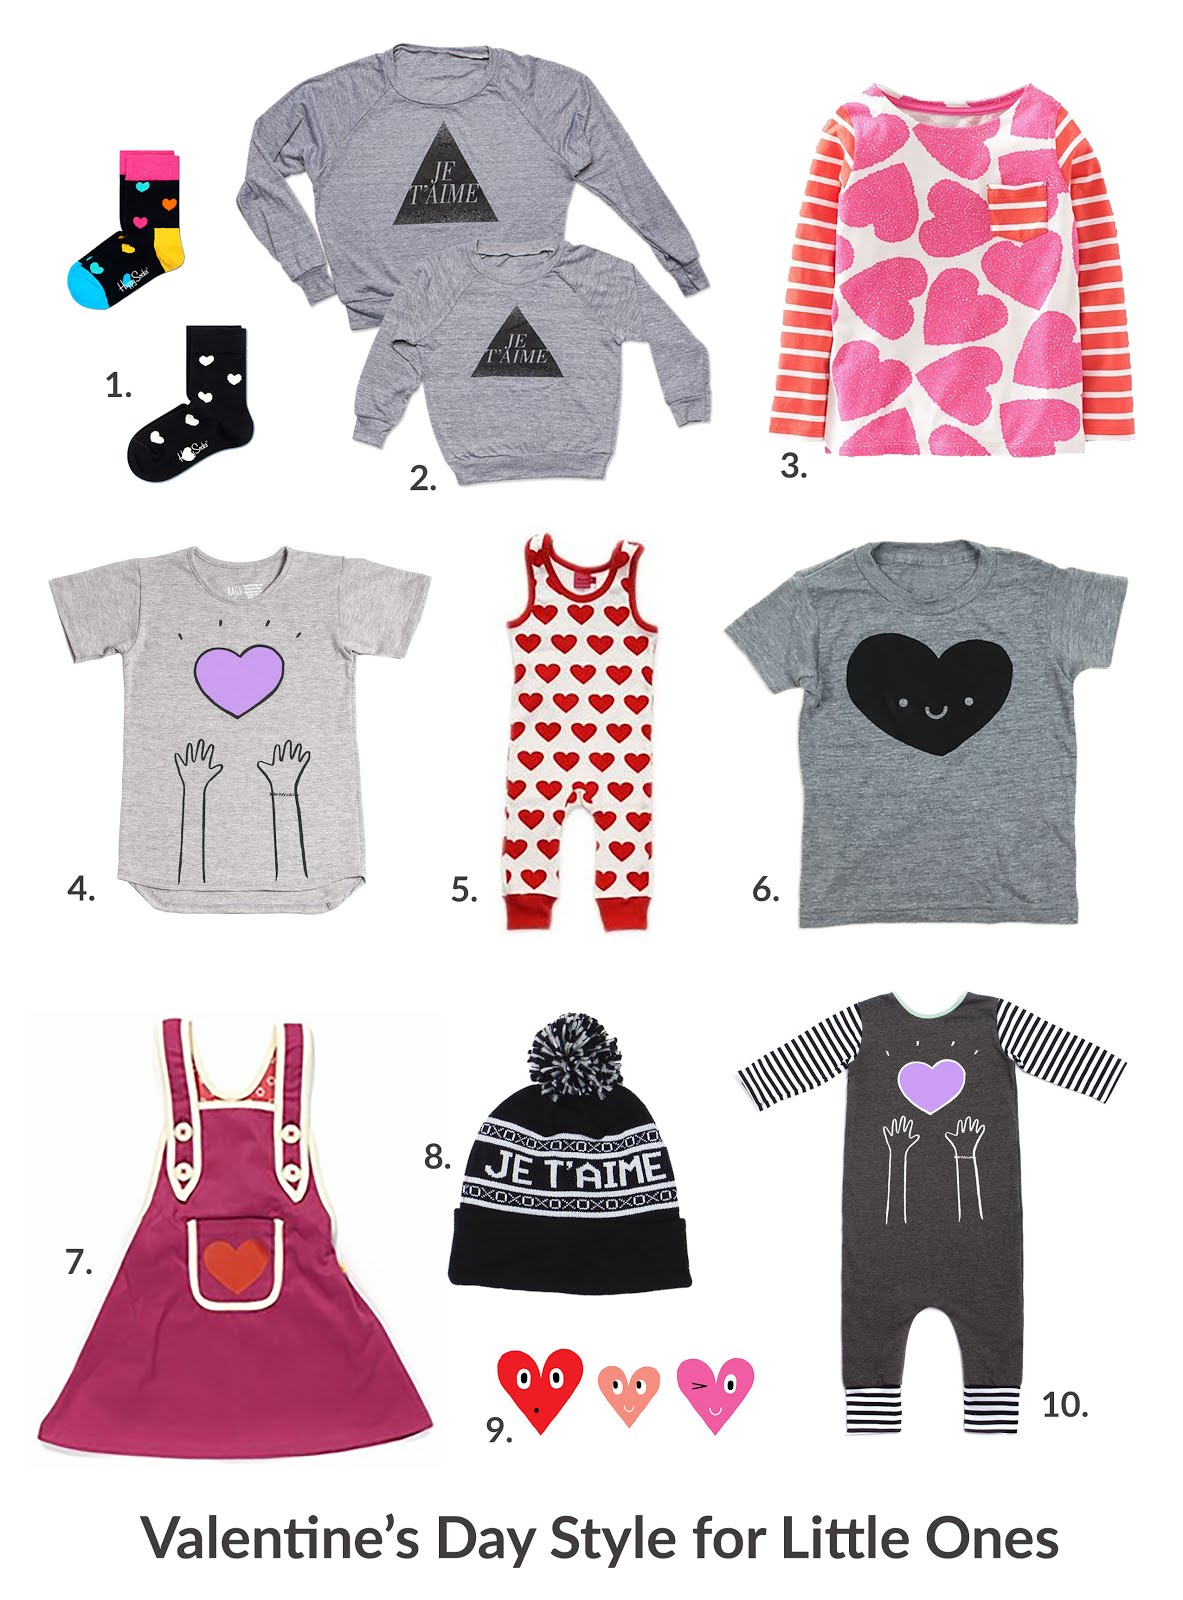 Valentine's Day Style for Little Ones